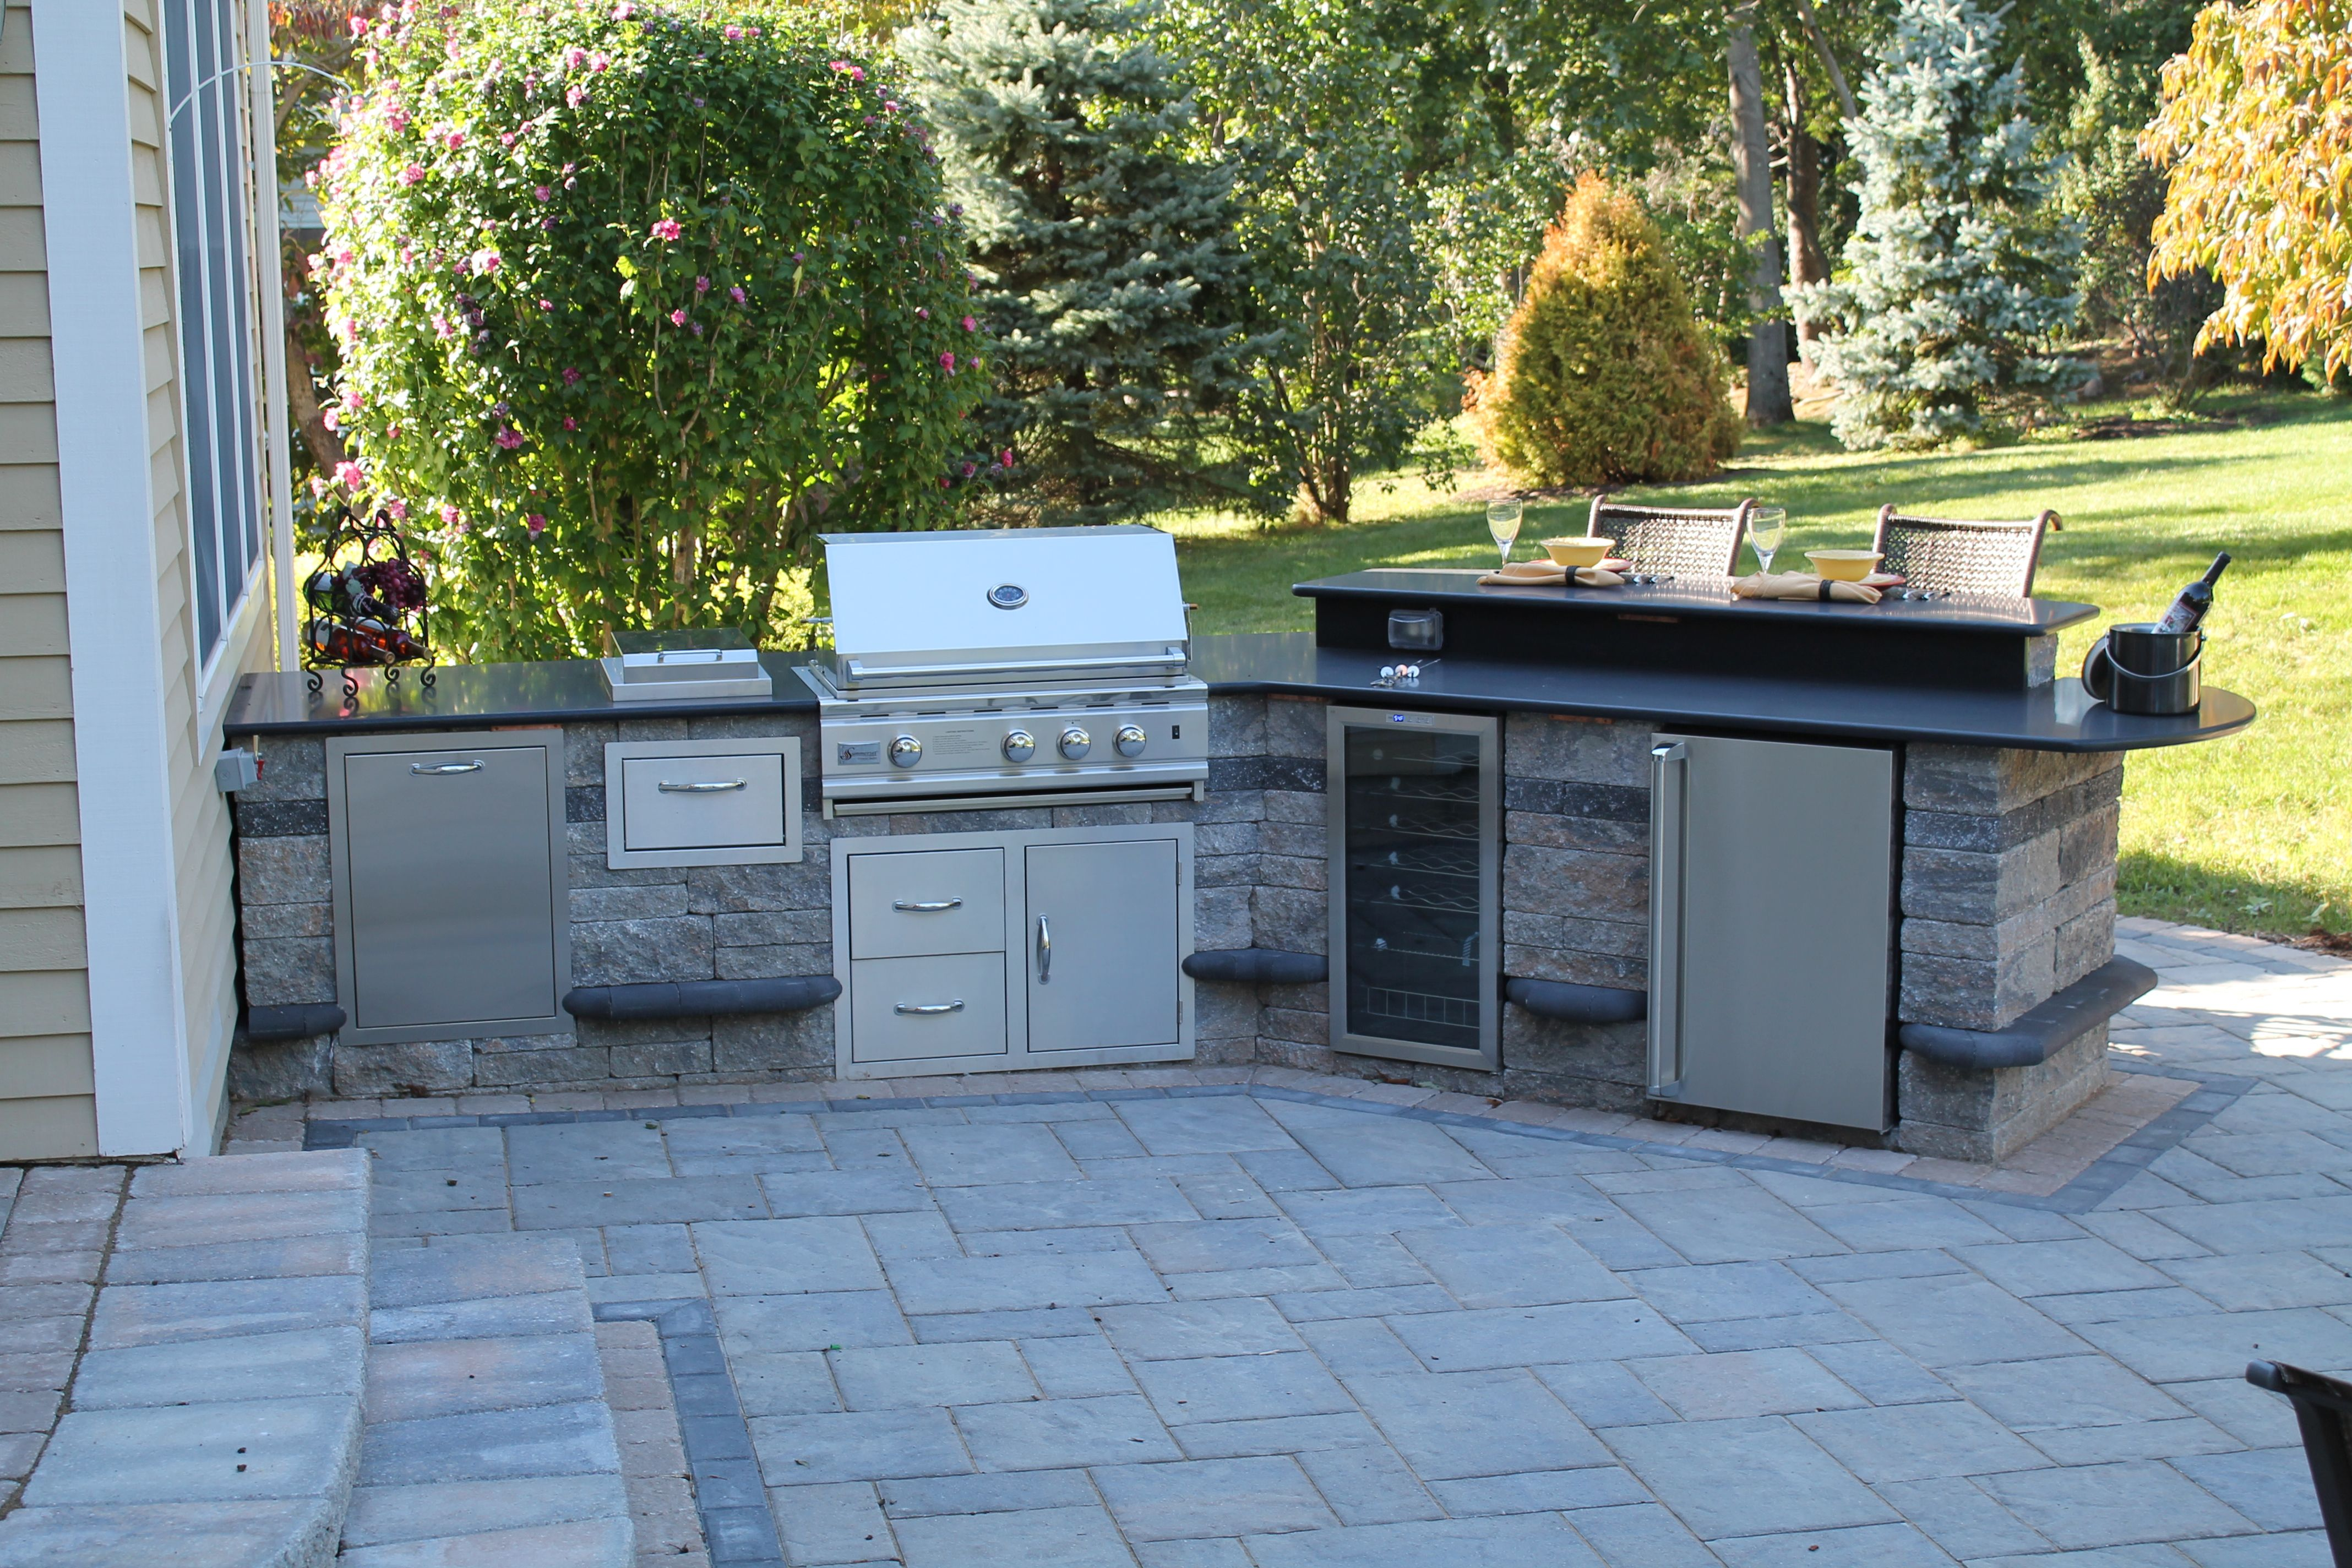 Outdoor Kitchen Refrigerator Built In Outdoor Kitchen W Grill Trash Can Paper Towel Holder